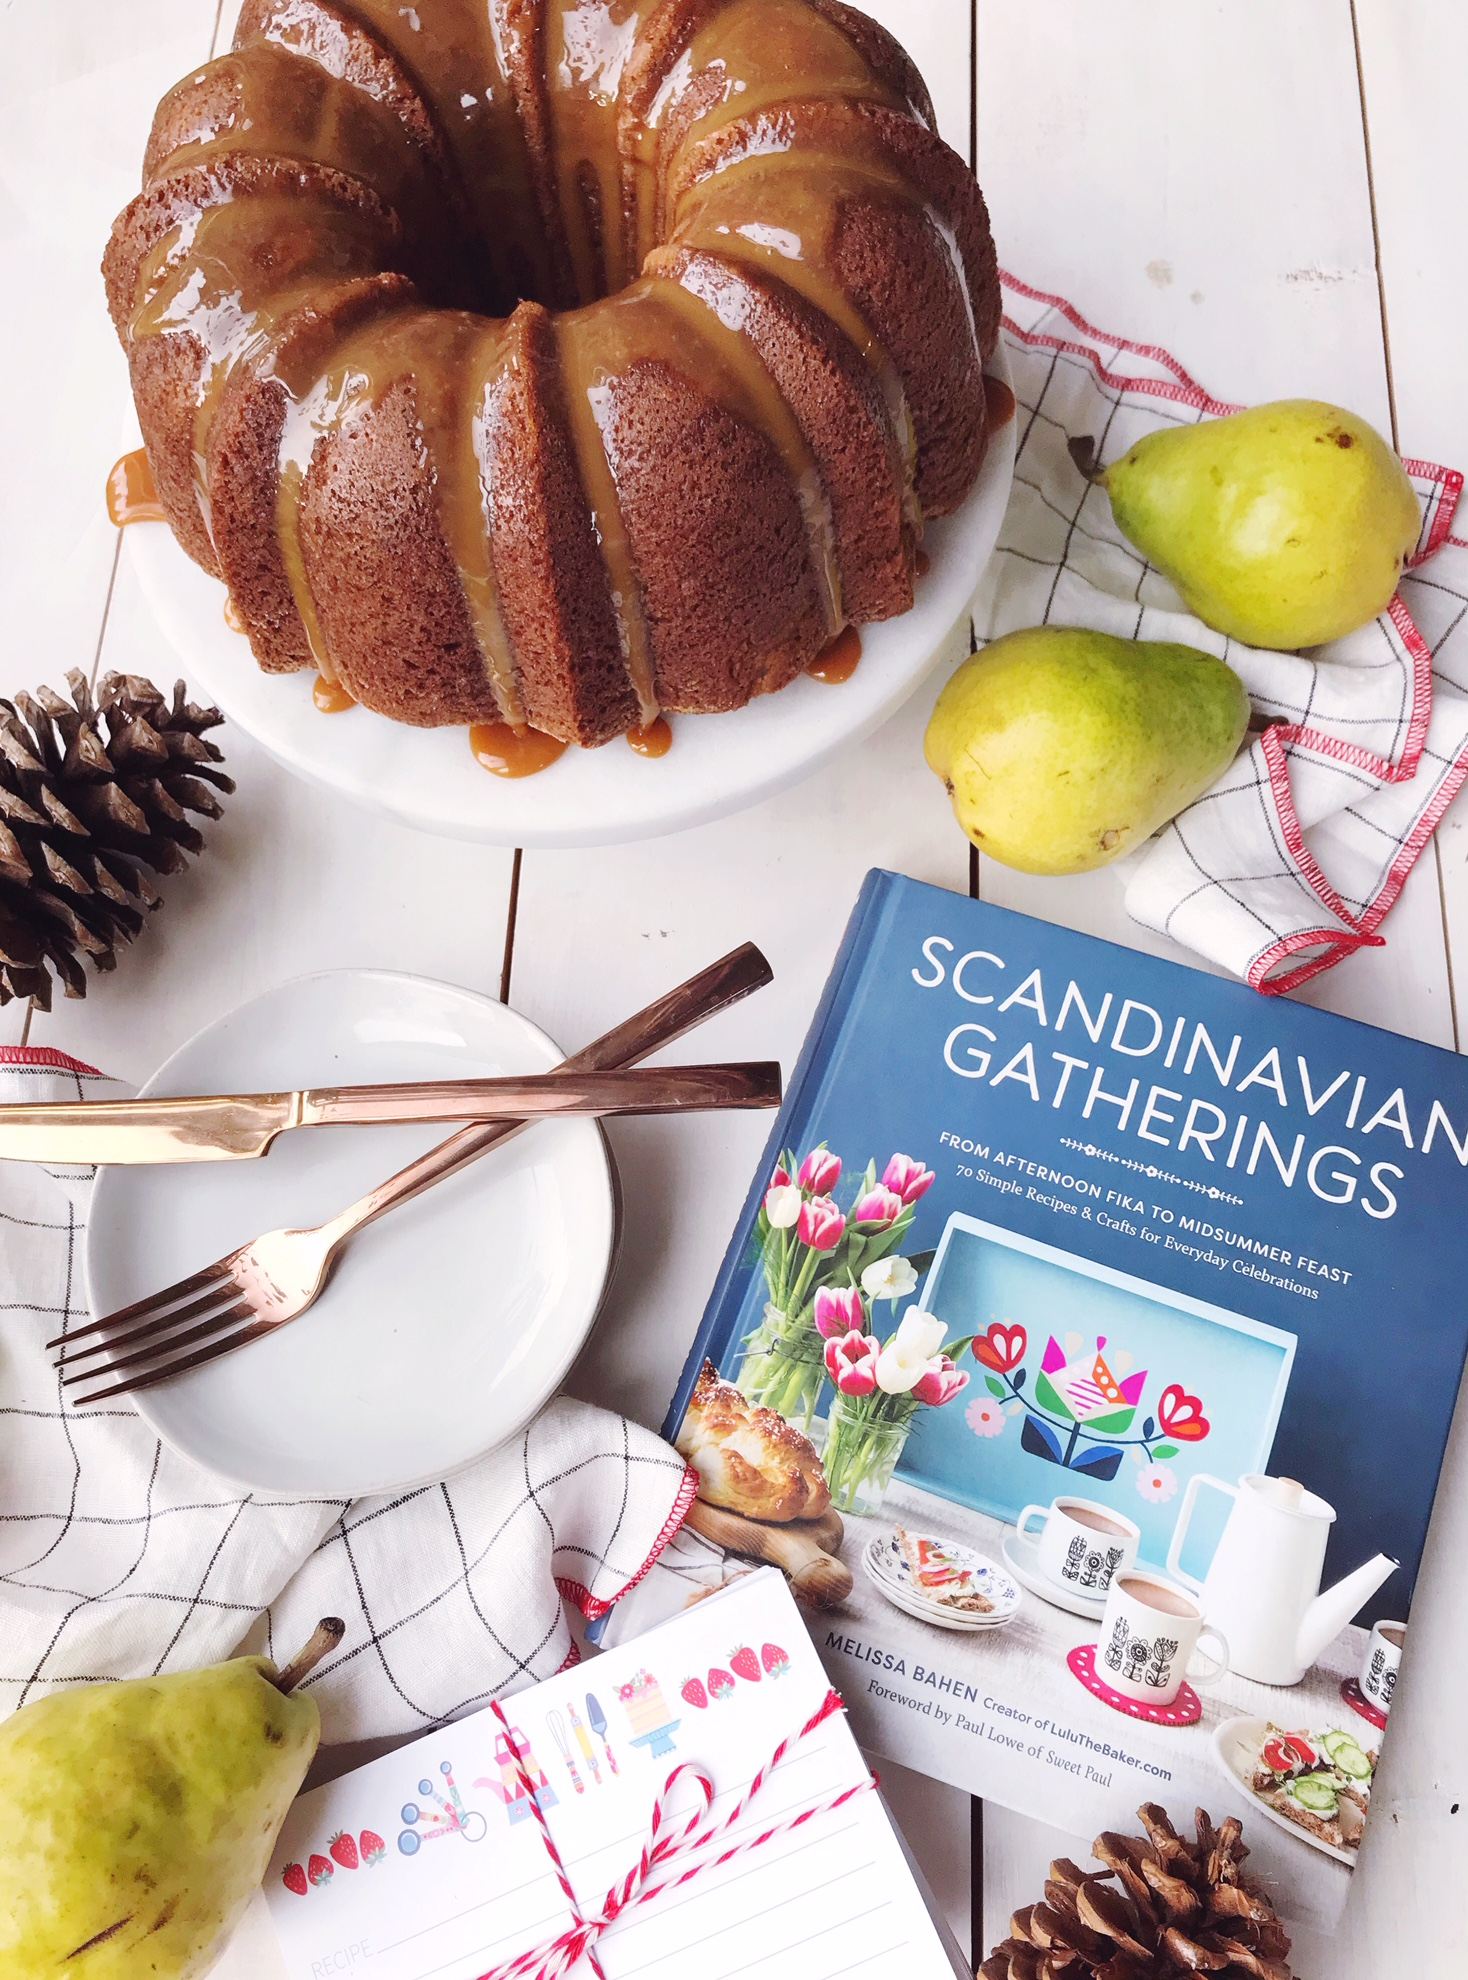 Get the recipe for Spiced Pear Bundt Cake with Caramel Sauce from Scandinavian Gatherings.